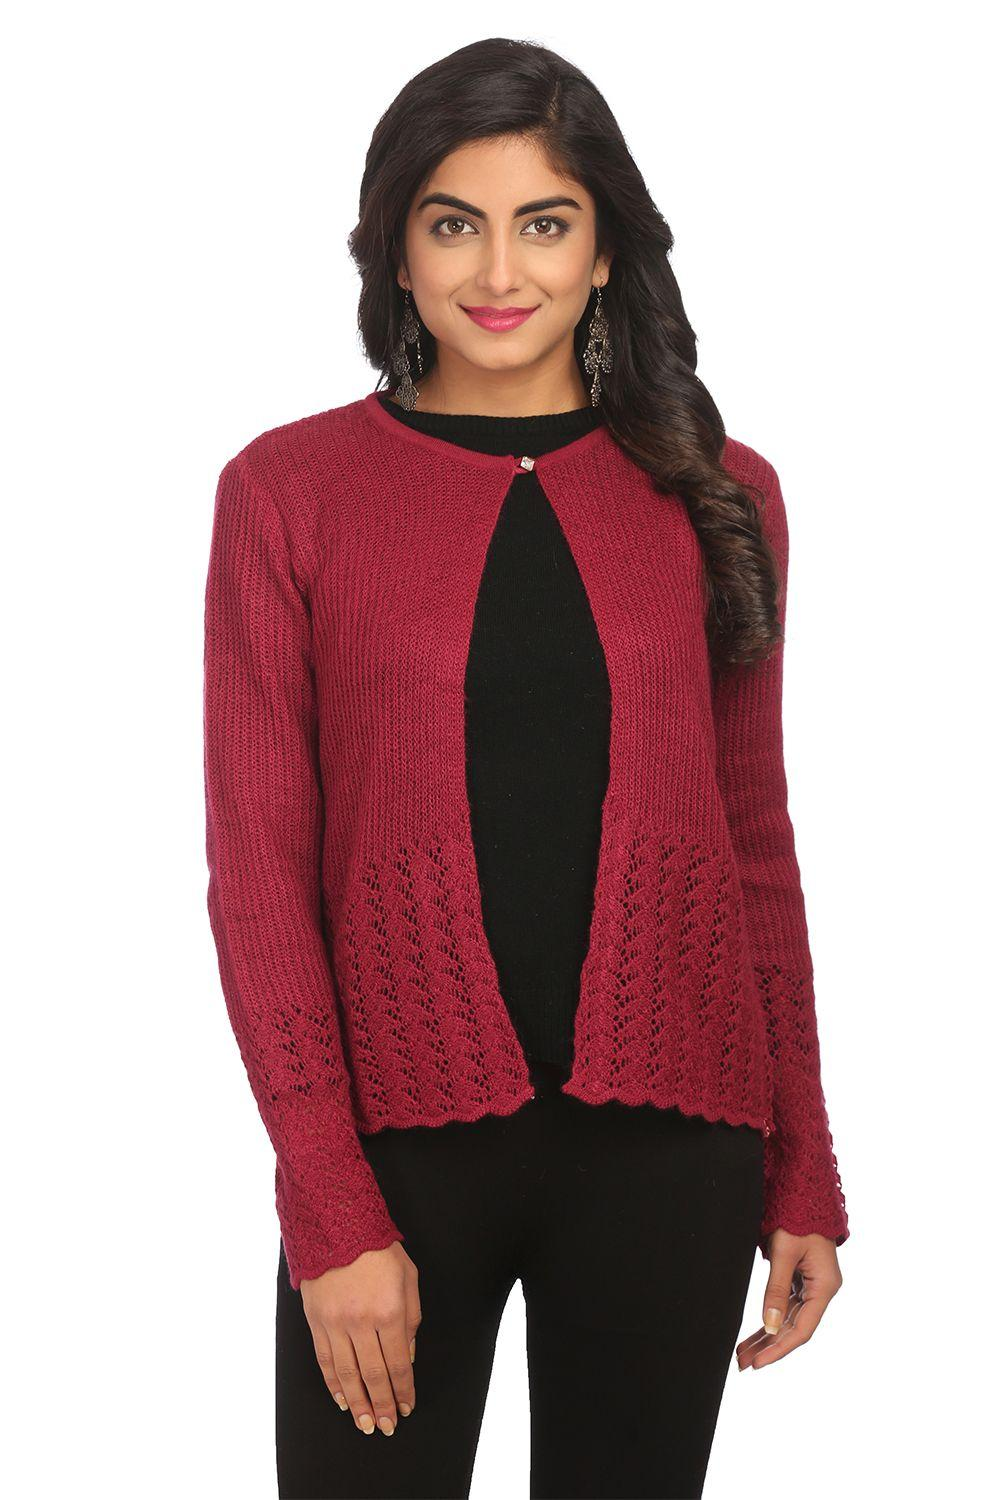 Maroon Asymmetric Acrylic & Wool Shrug - WINTERW13